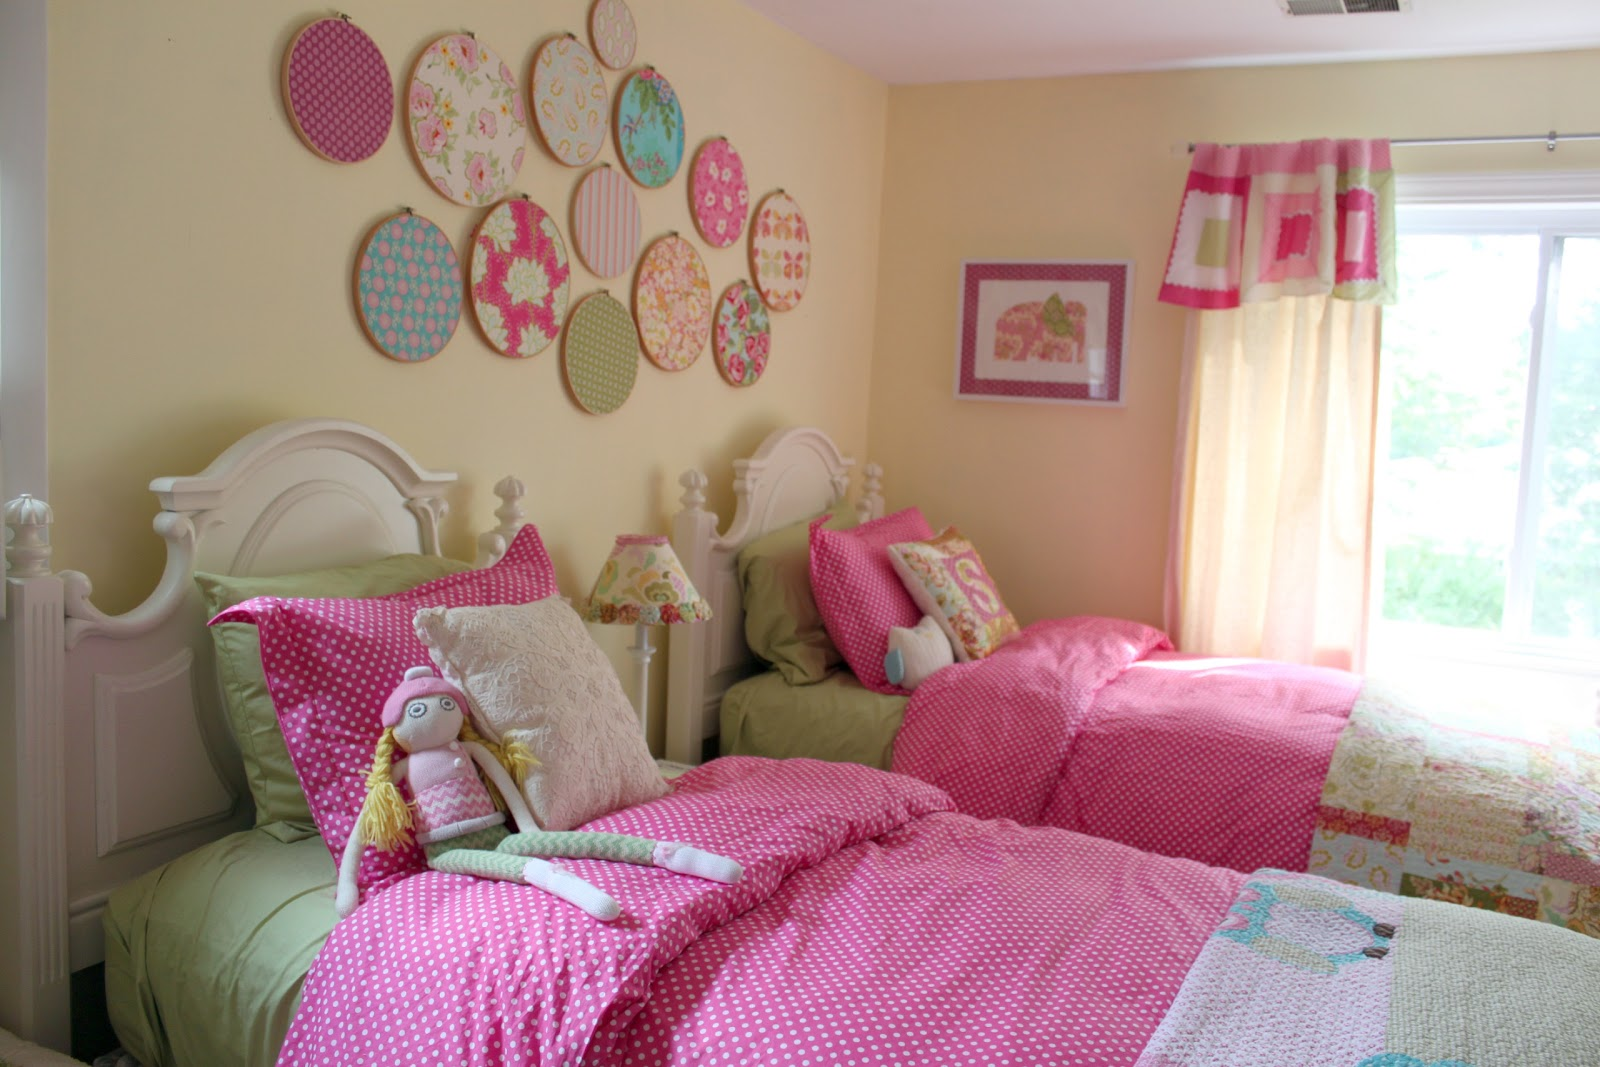 Decorating girls shared toddler bedroom the cottage mama - Bedrooms for girls ...